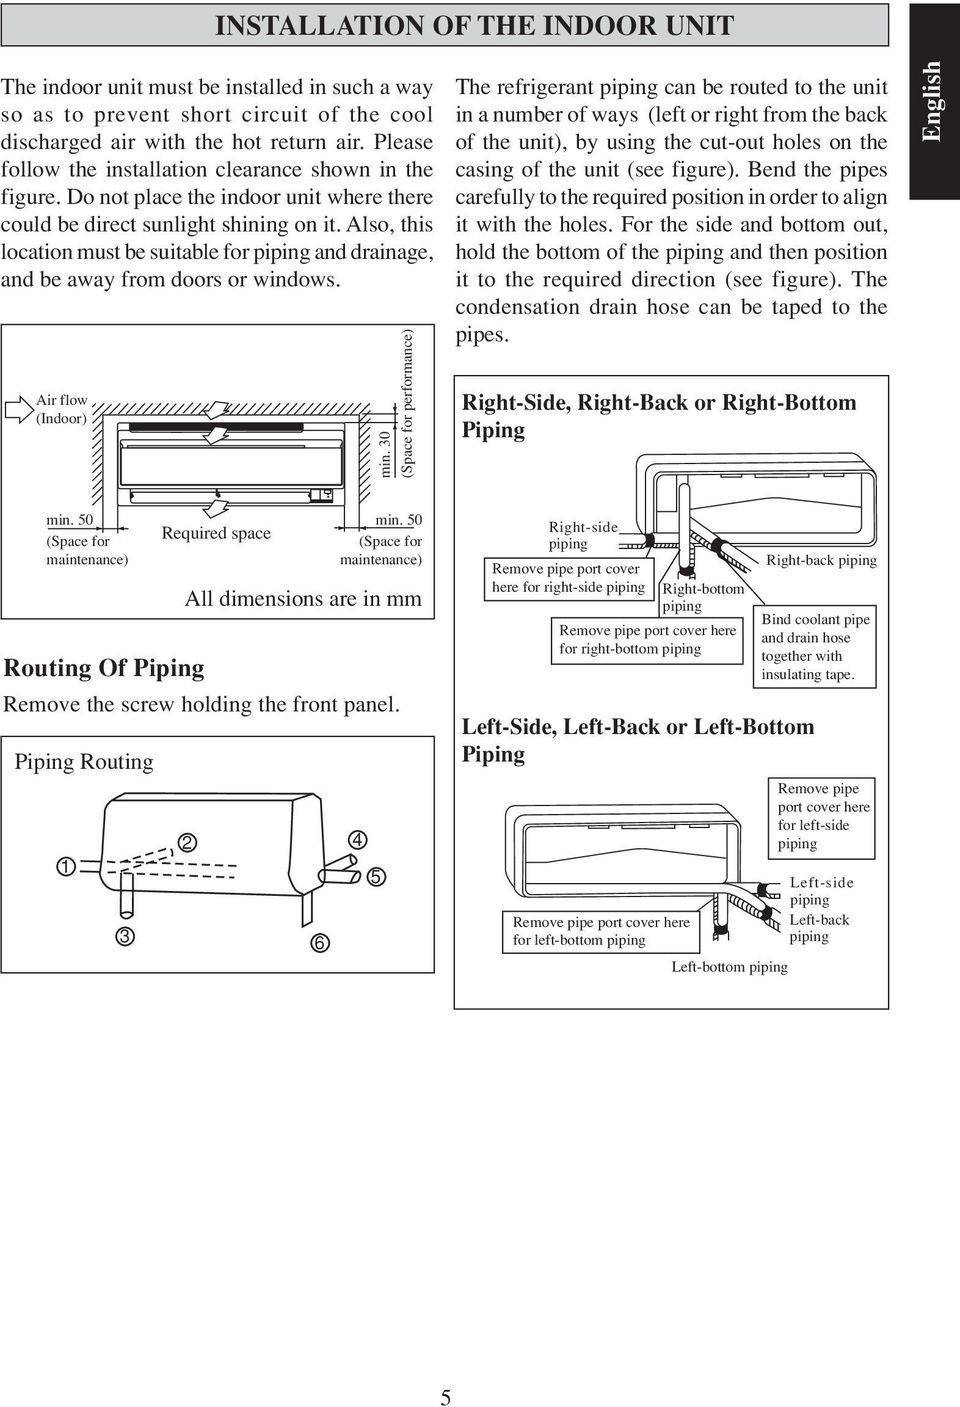 Wall Mounted Split Type Air Conditioner J Series Pdf Piping Diagram Refrigeration Also This Location Must Be Suitable For And Drainage Away From